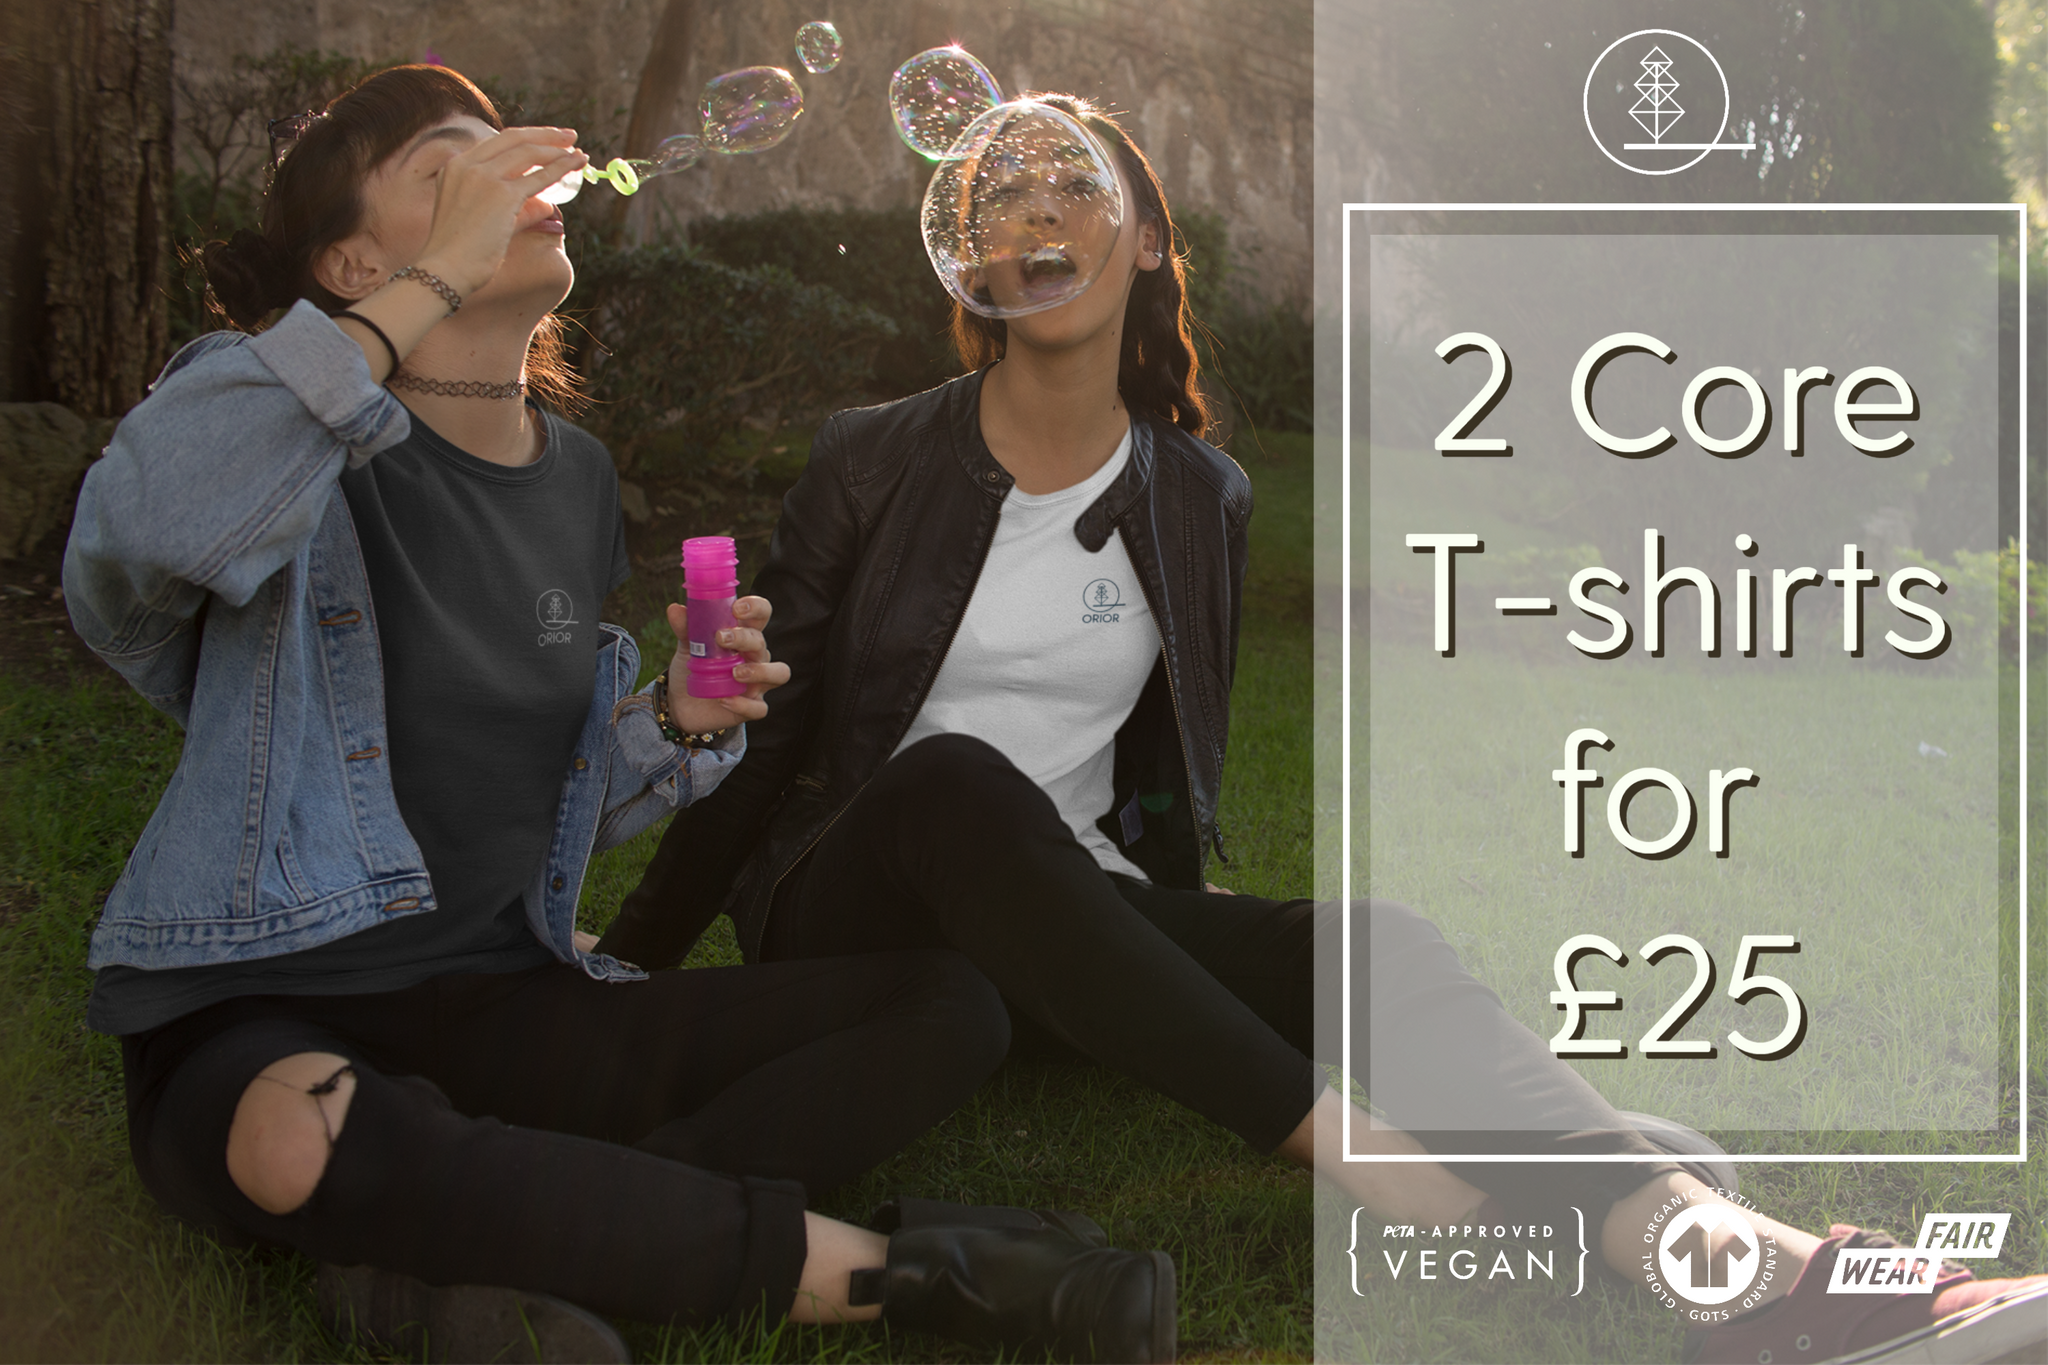 2 Organic T-shirts for £25